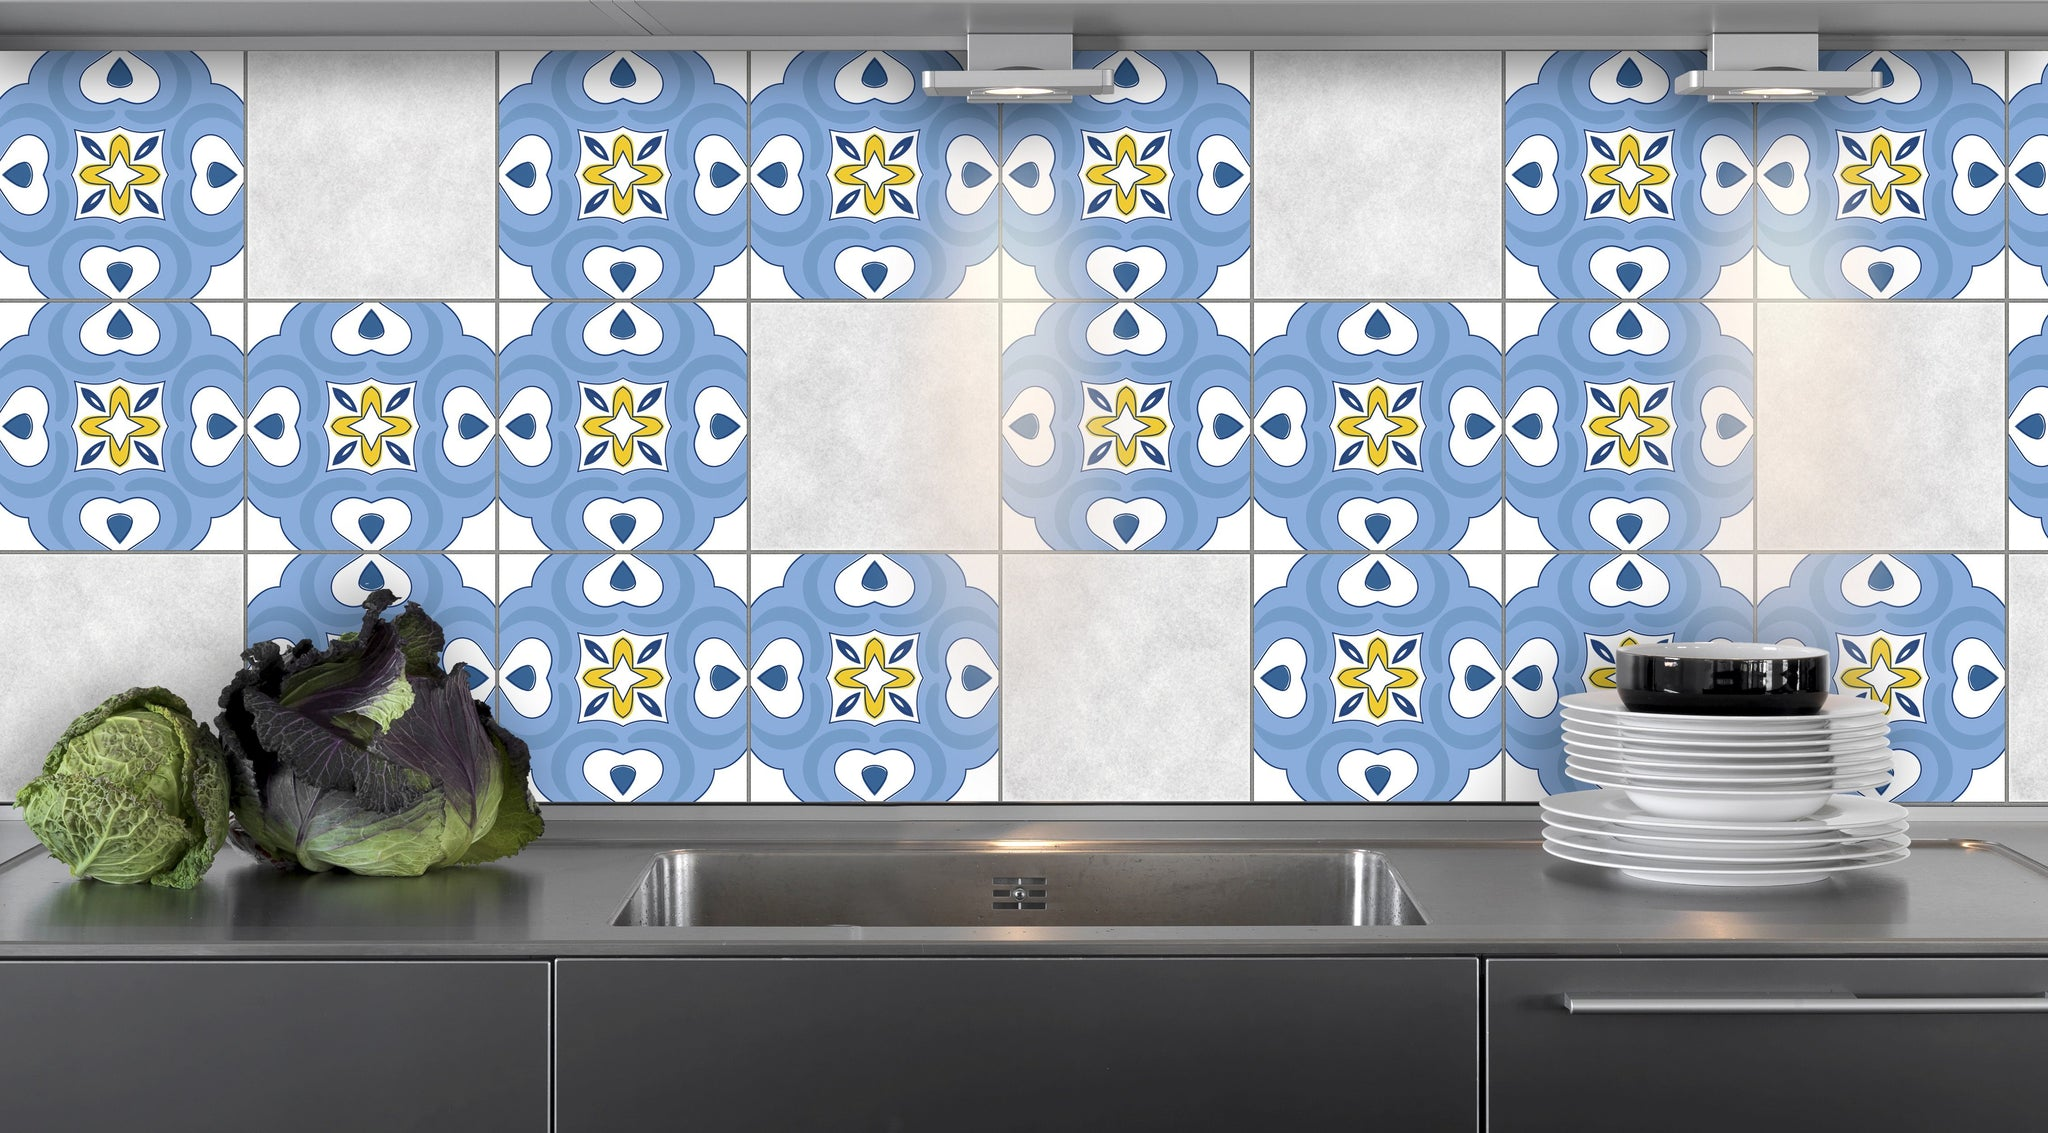 Tile stickers - KP062